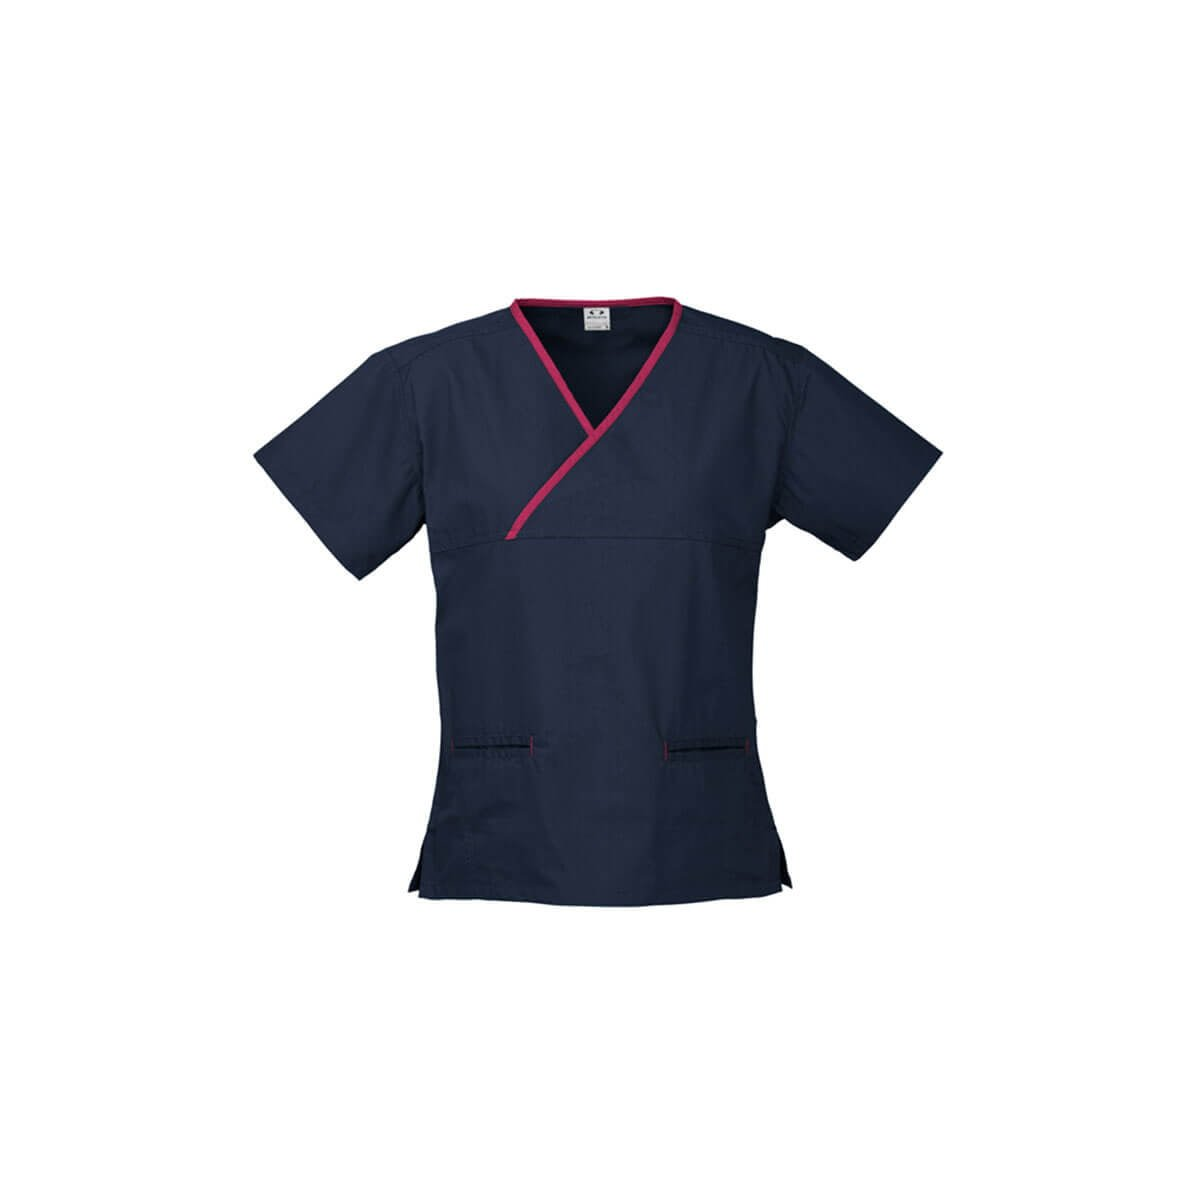 Ladies Contrast Crossover Scrubs Top-Navy / Fuchsia